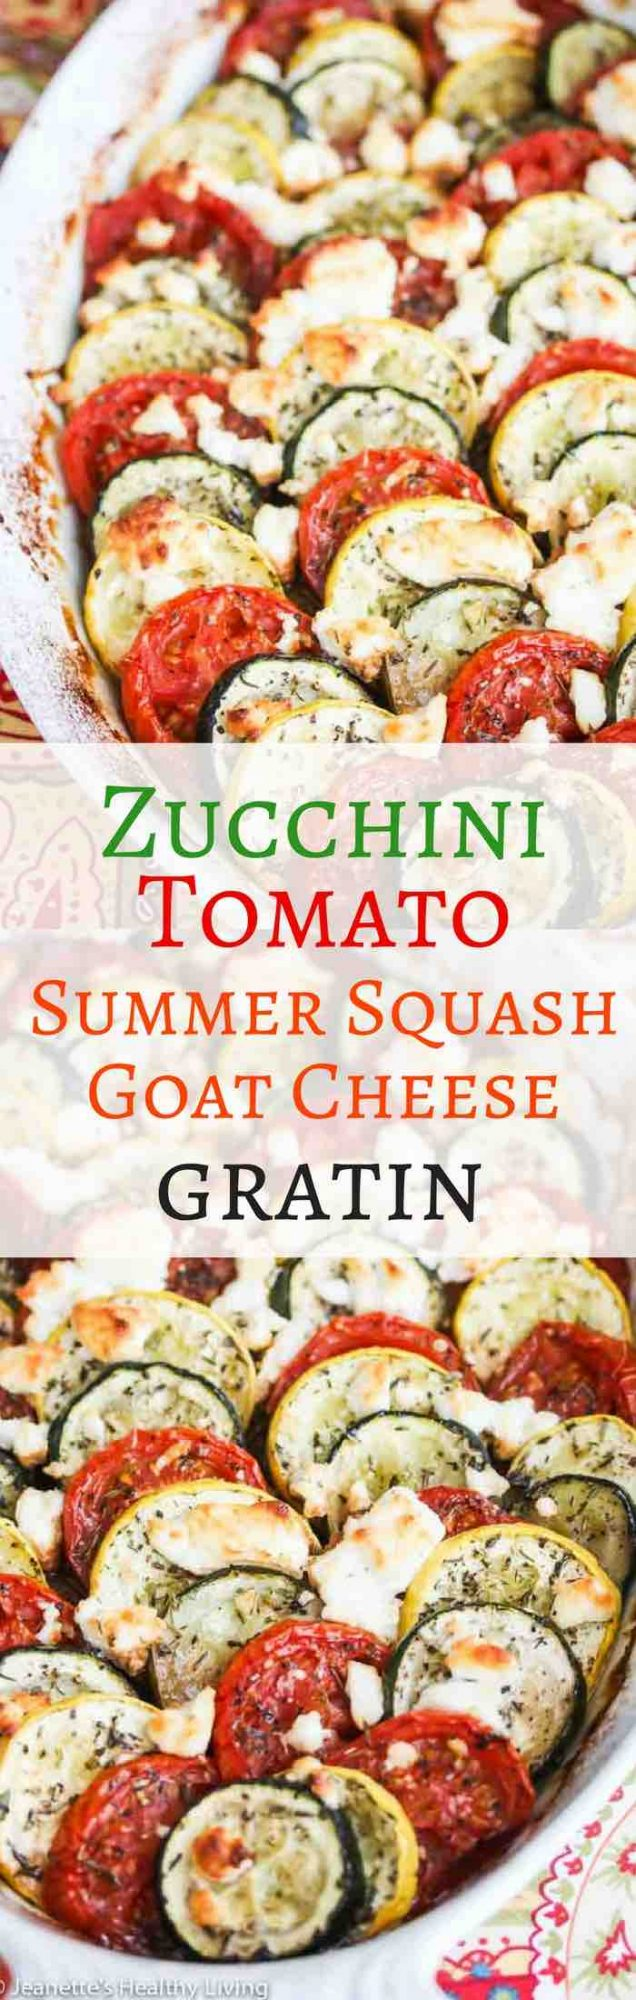 Zucchini Tomato Summer Squash Goat Cheese Gratin - beautiful summer vegetable dish that will impress your guests